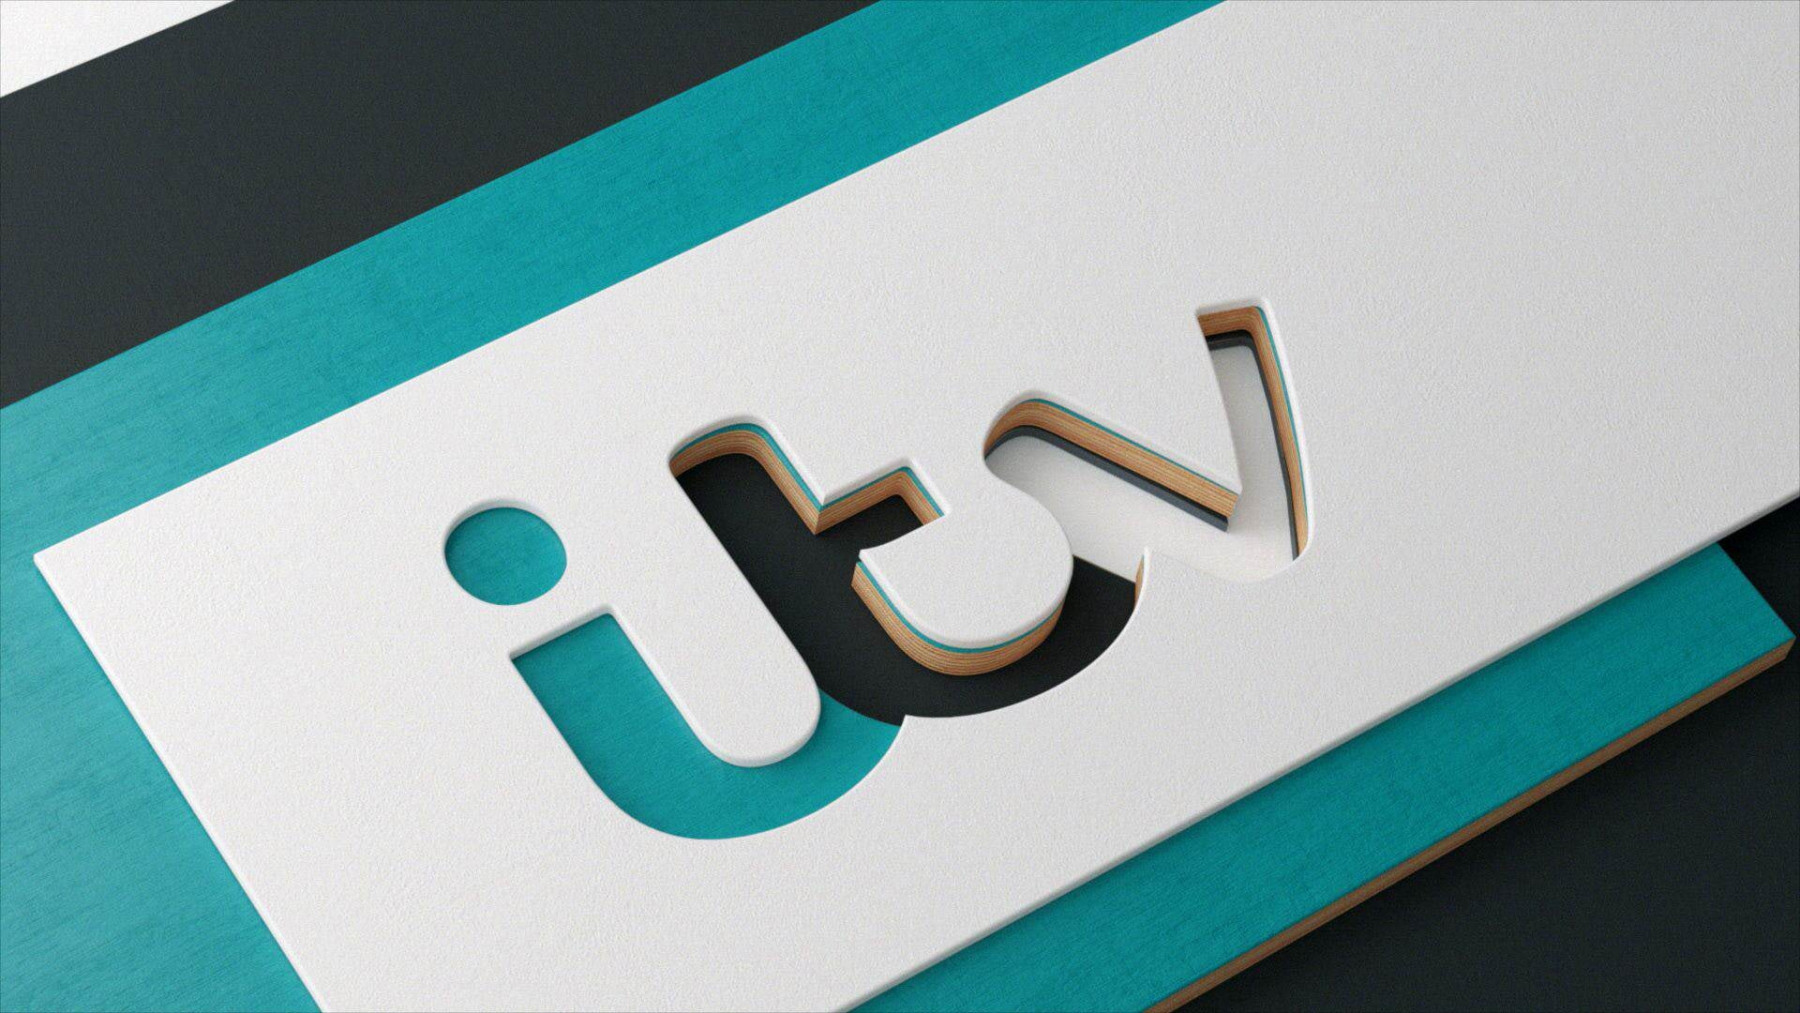 ITV announce a full year dividend of 8p